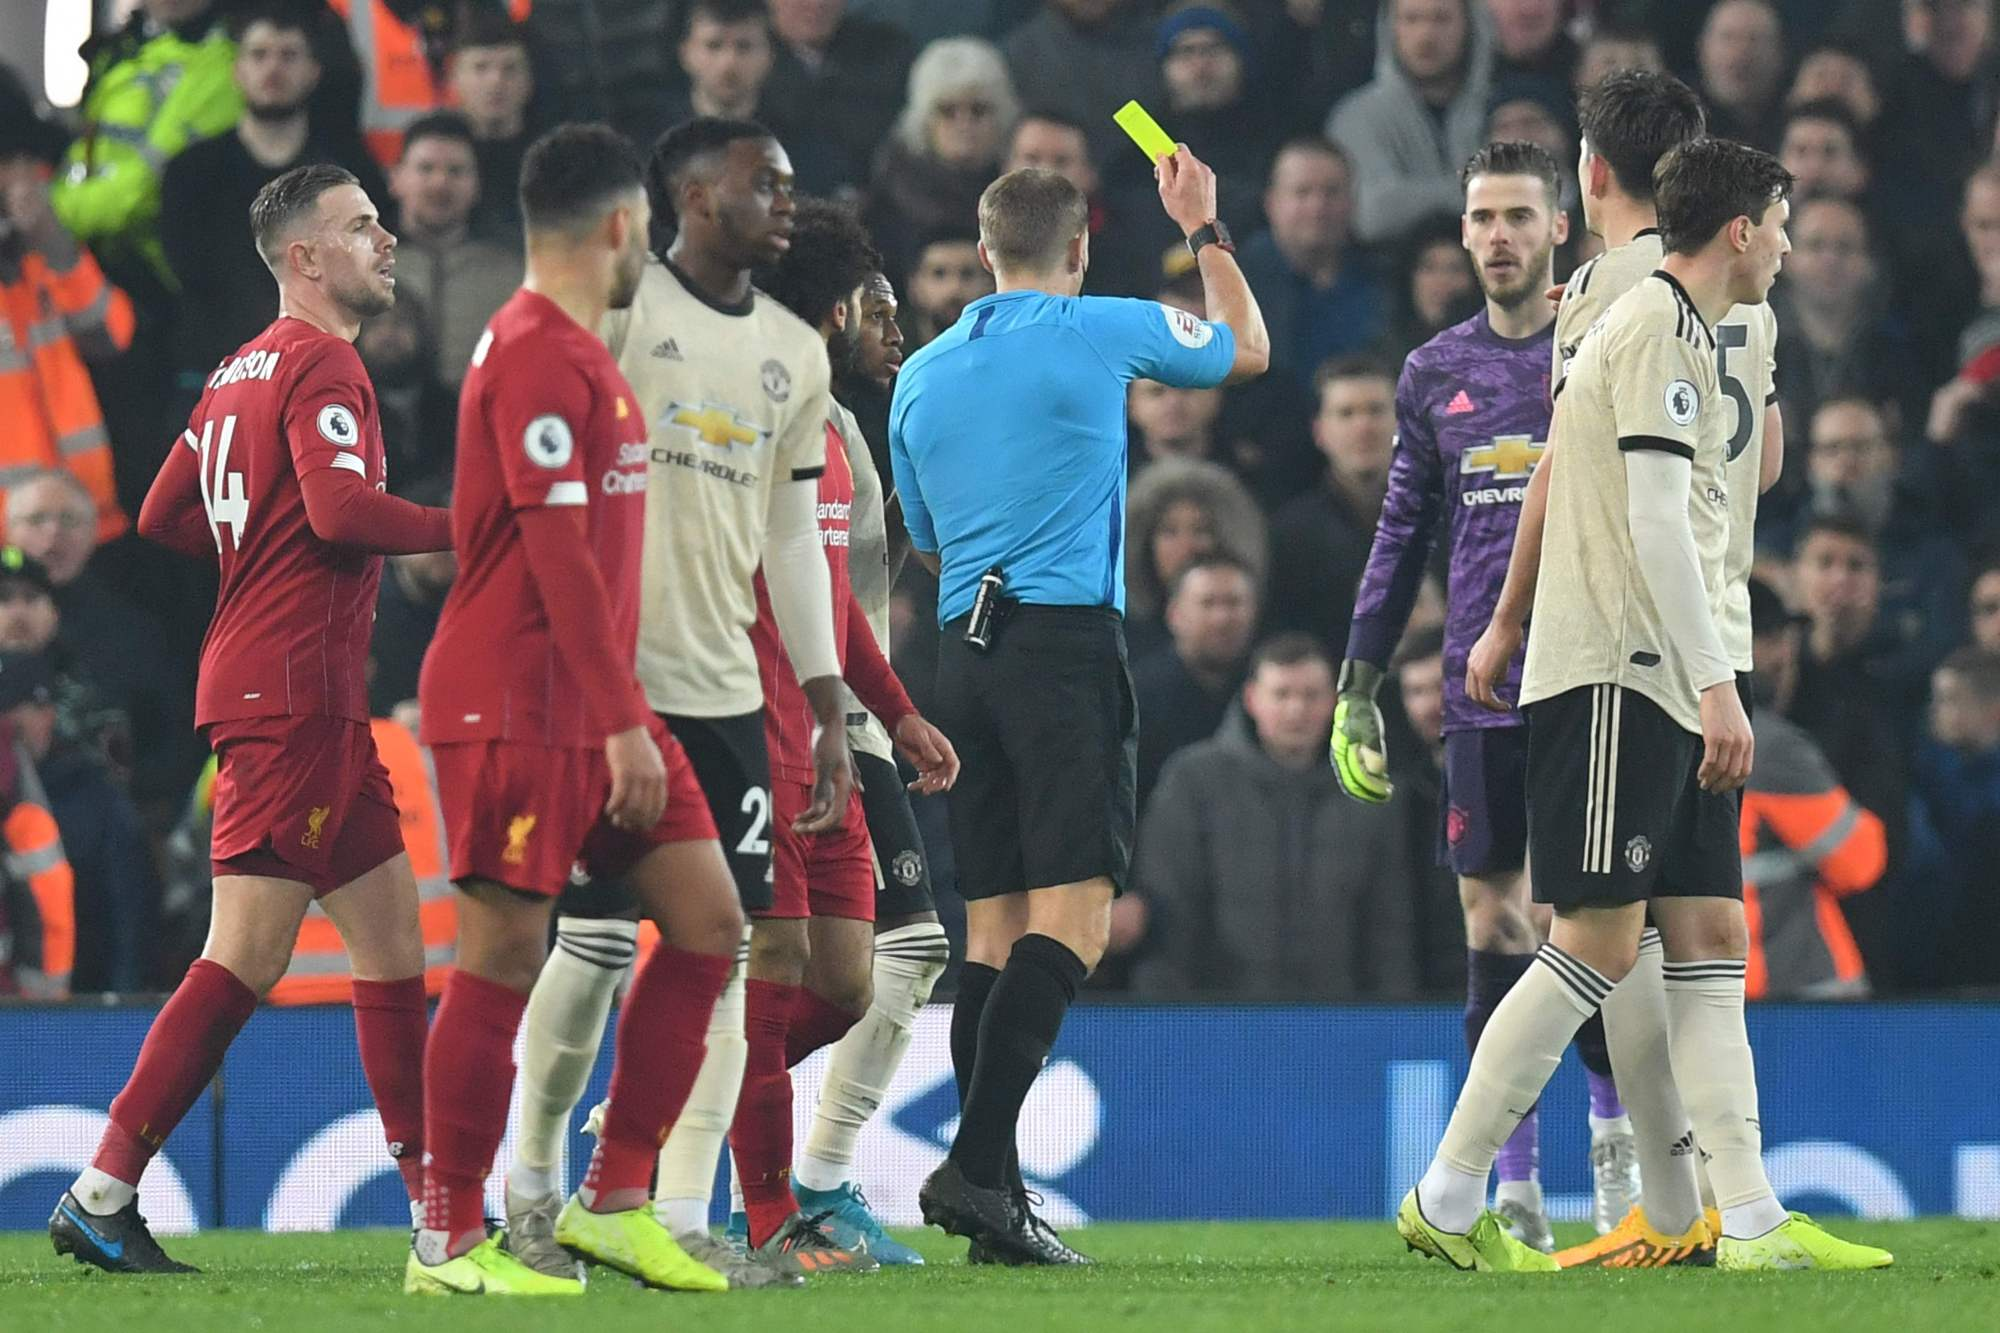 Referee Craig Pawson (center) books Manchester United goalkeeper David de Gea (third from right) for dissent during a Premier League match against Liverpool on Sunday at Anfield. | AFP-JIJI